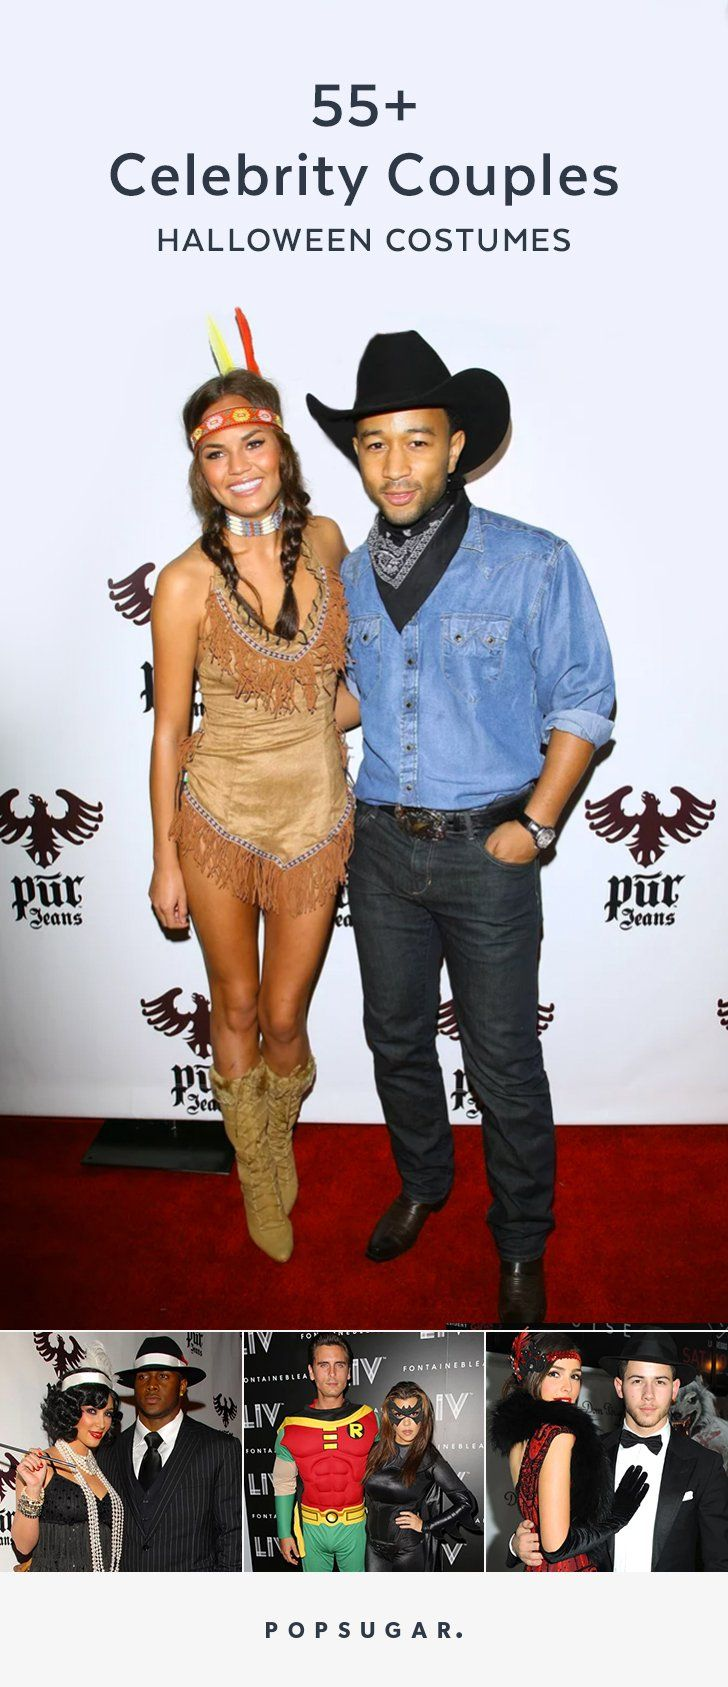 Pin for Later: 70+ Celebrity Couples Halloween Costumes